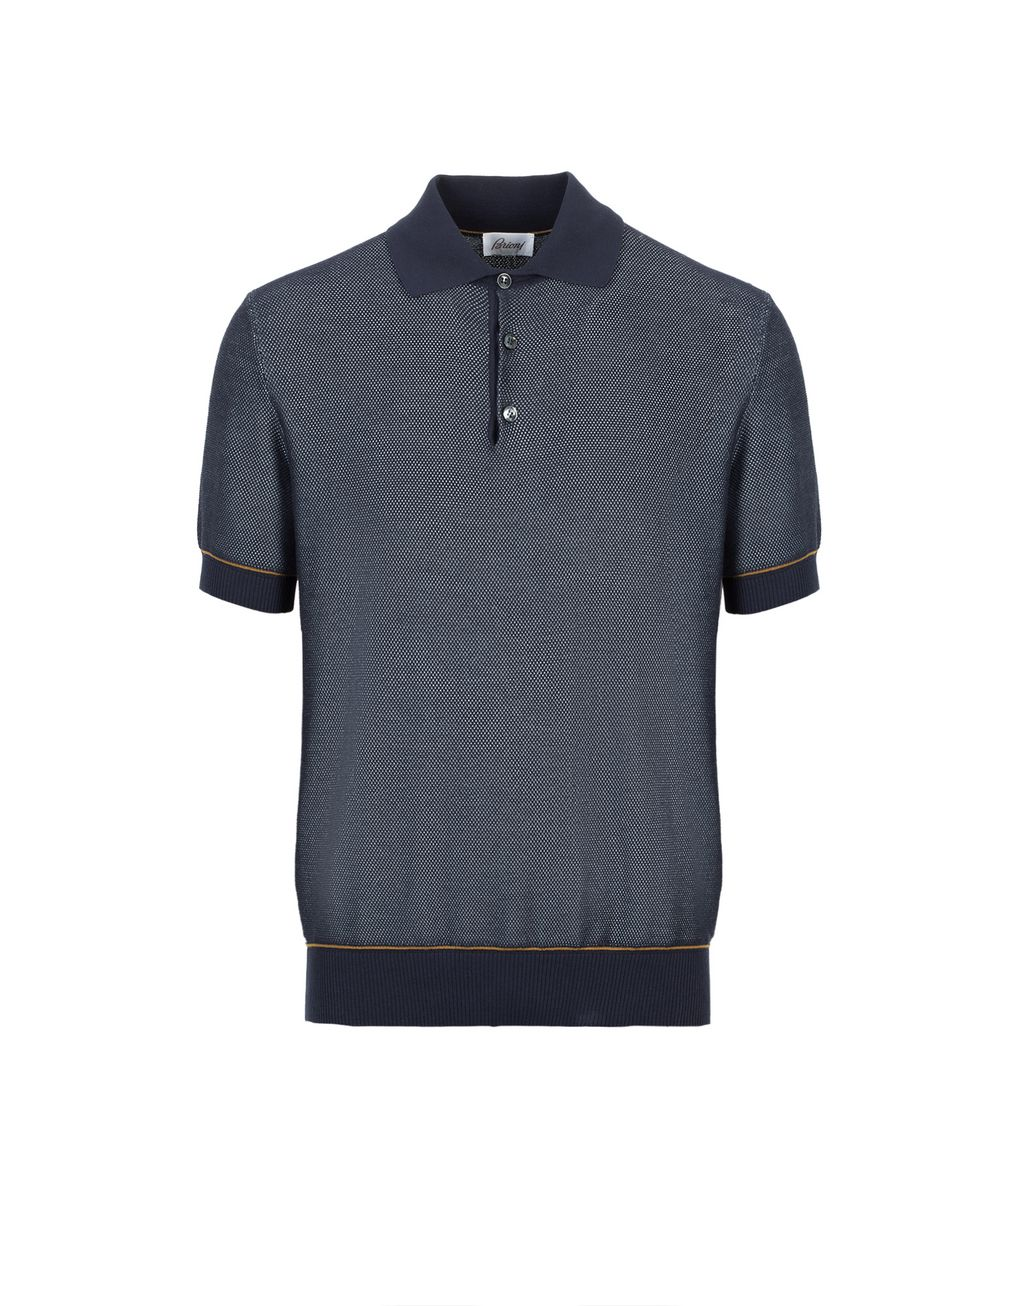 BRIONI Navy Blue Cotton and Silk Piquet Polo Shirt T-Shirts & Polos Man f